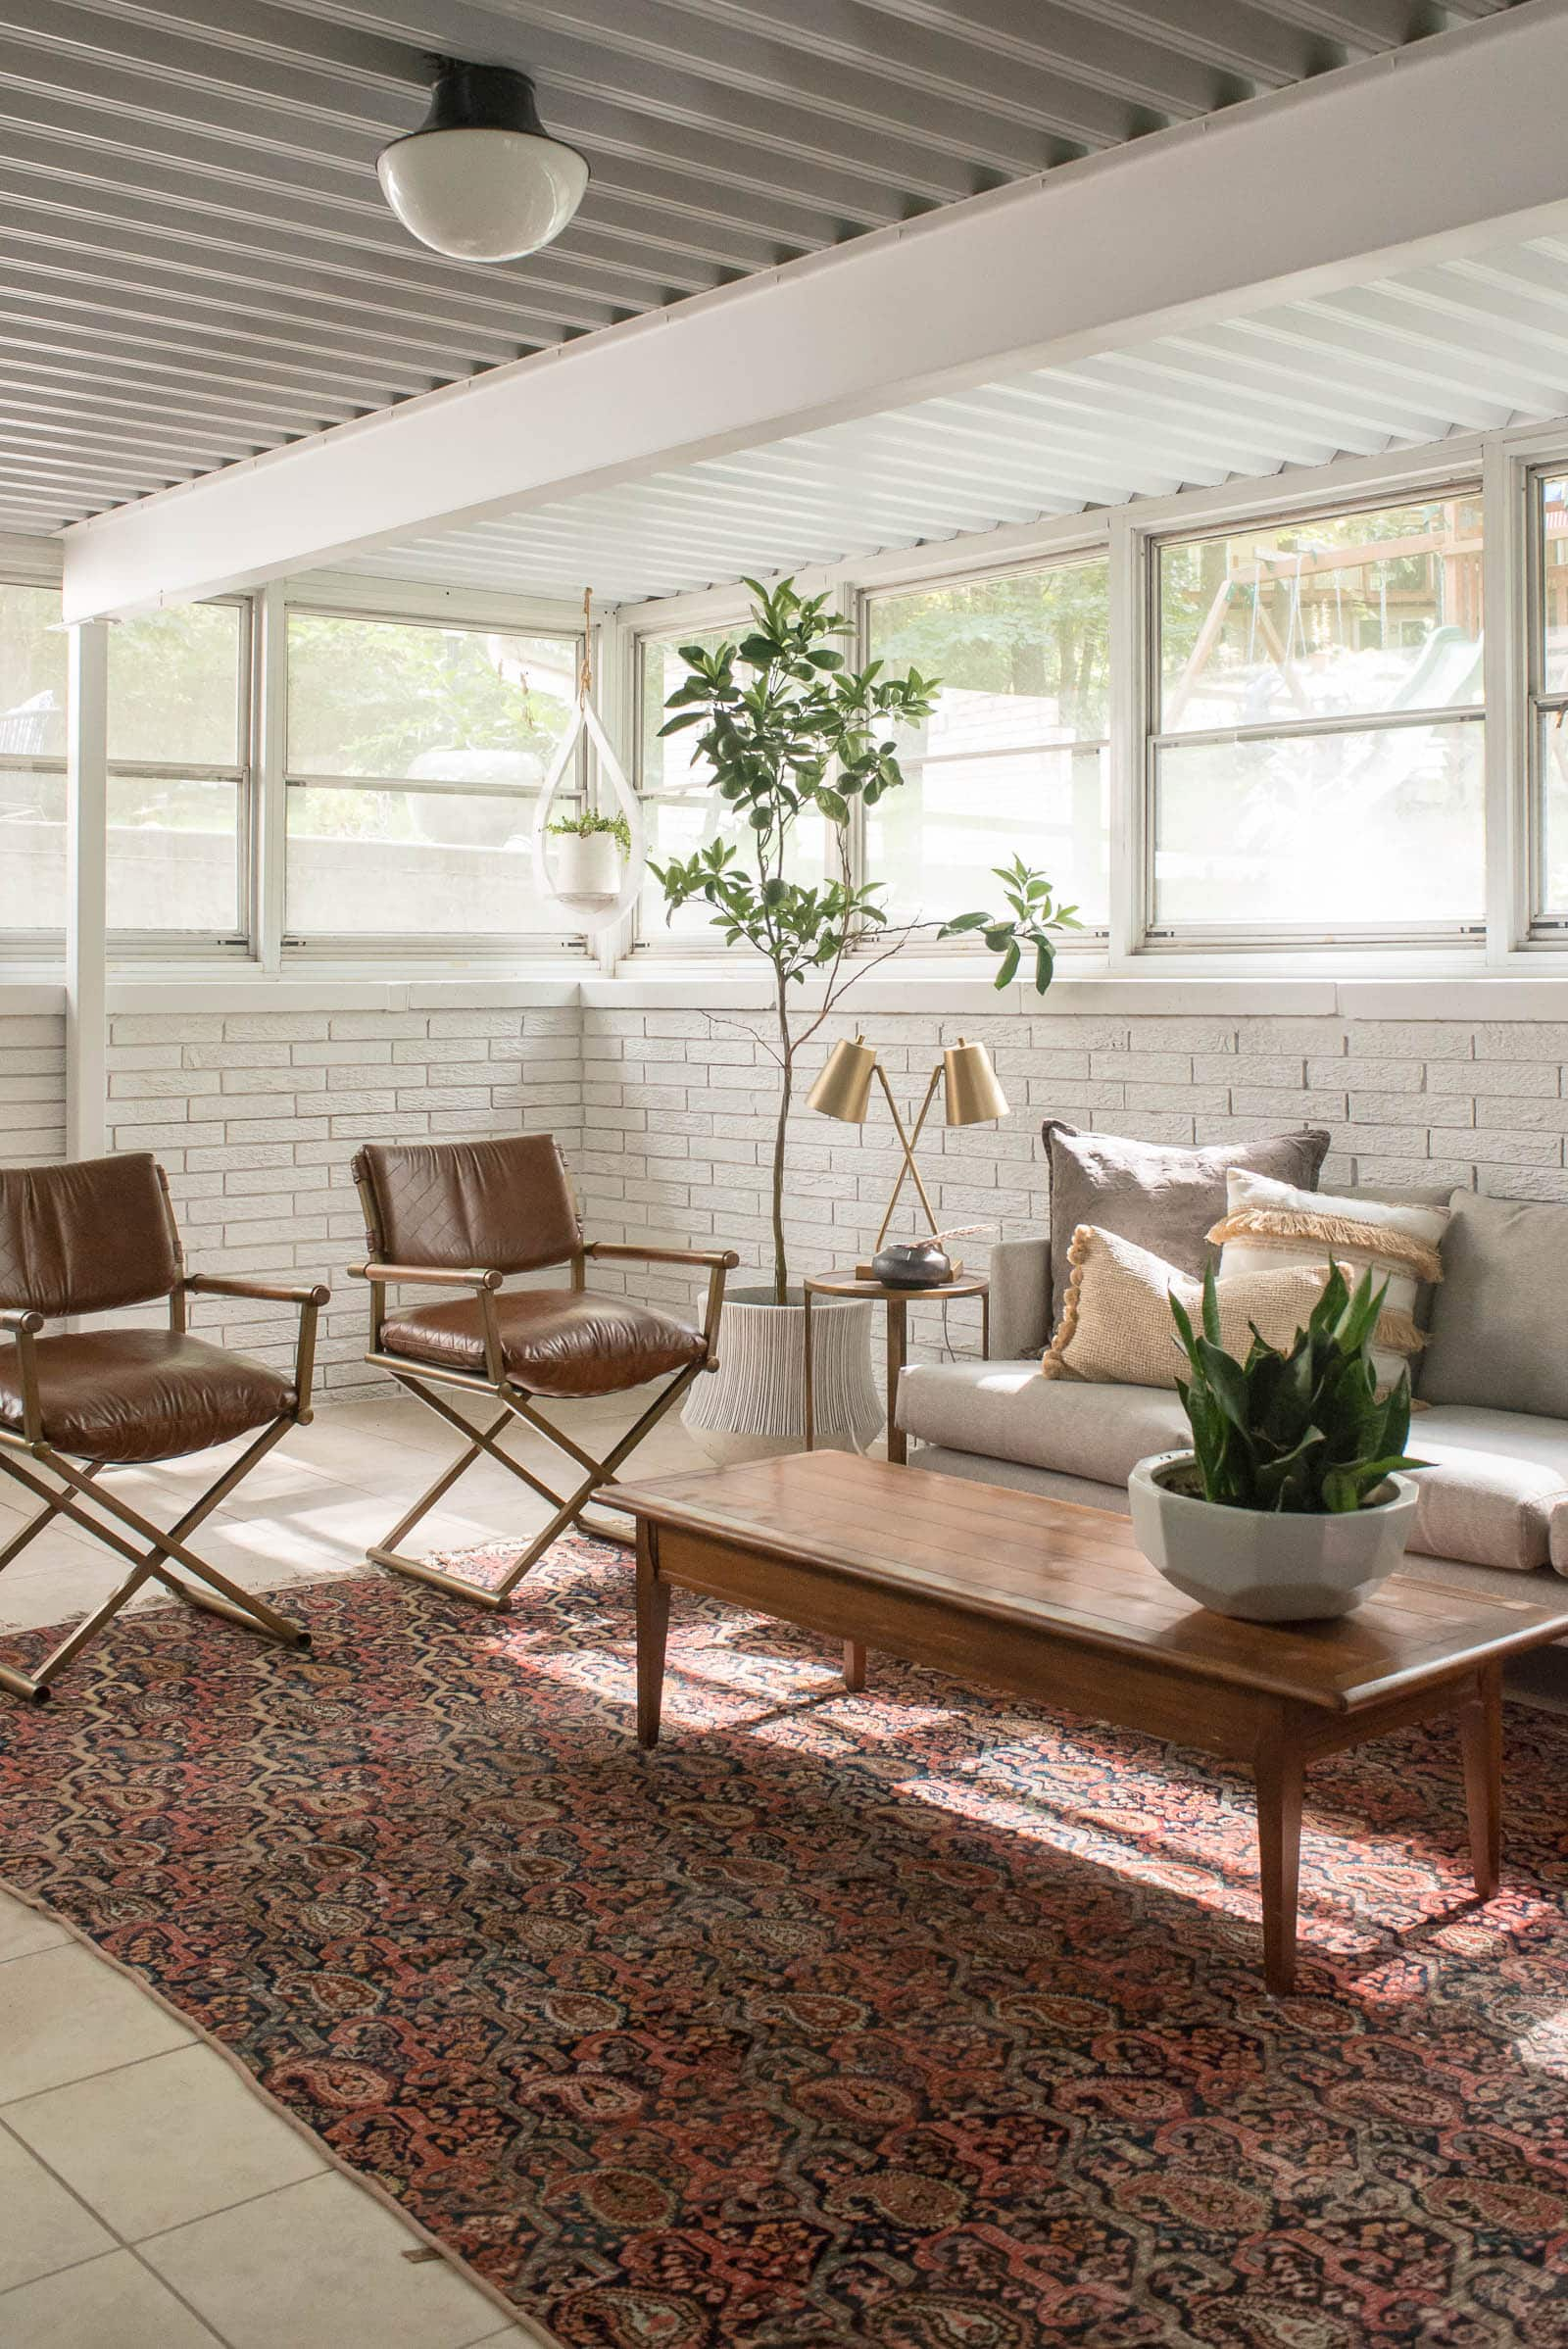 Plants in a sunroom